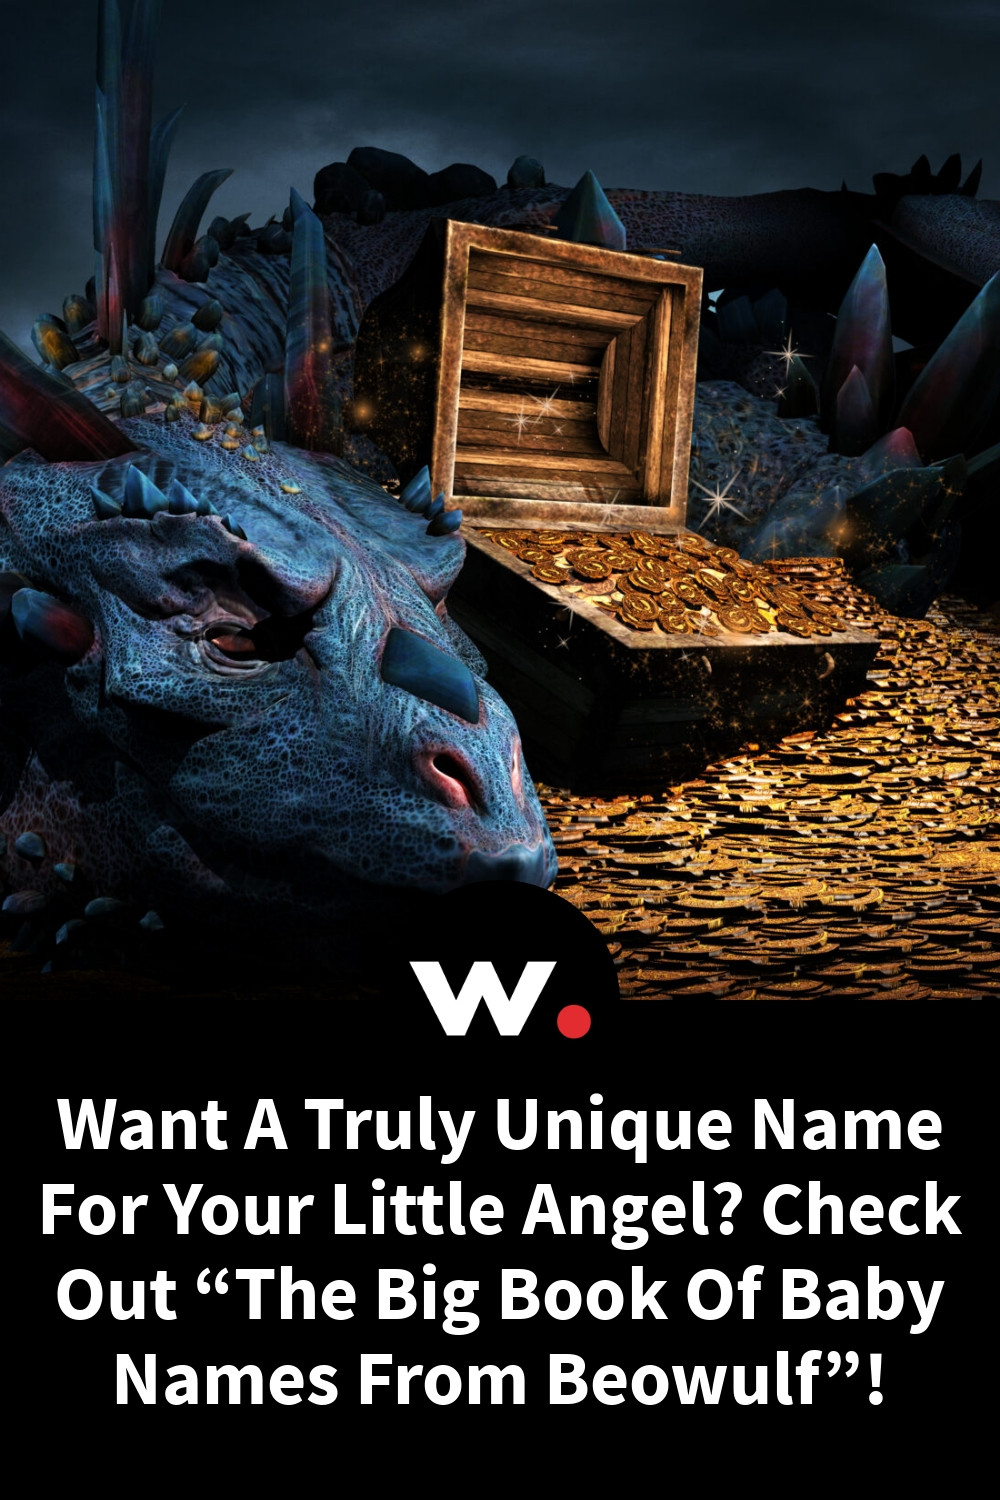 """Want A Truly Unique Name For Your Little Angel?  Check Out """"The Big Book Of Baby Names From Beowulf""""!"""